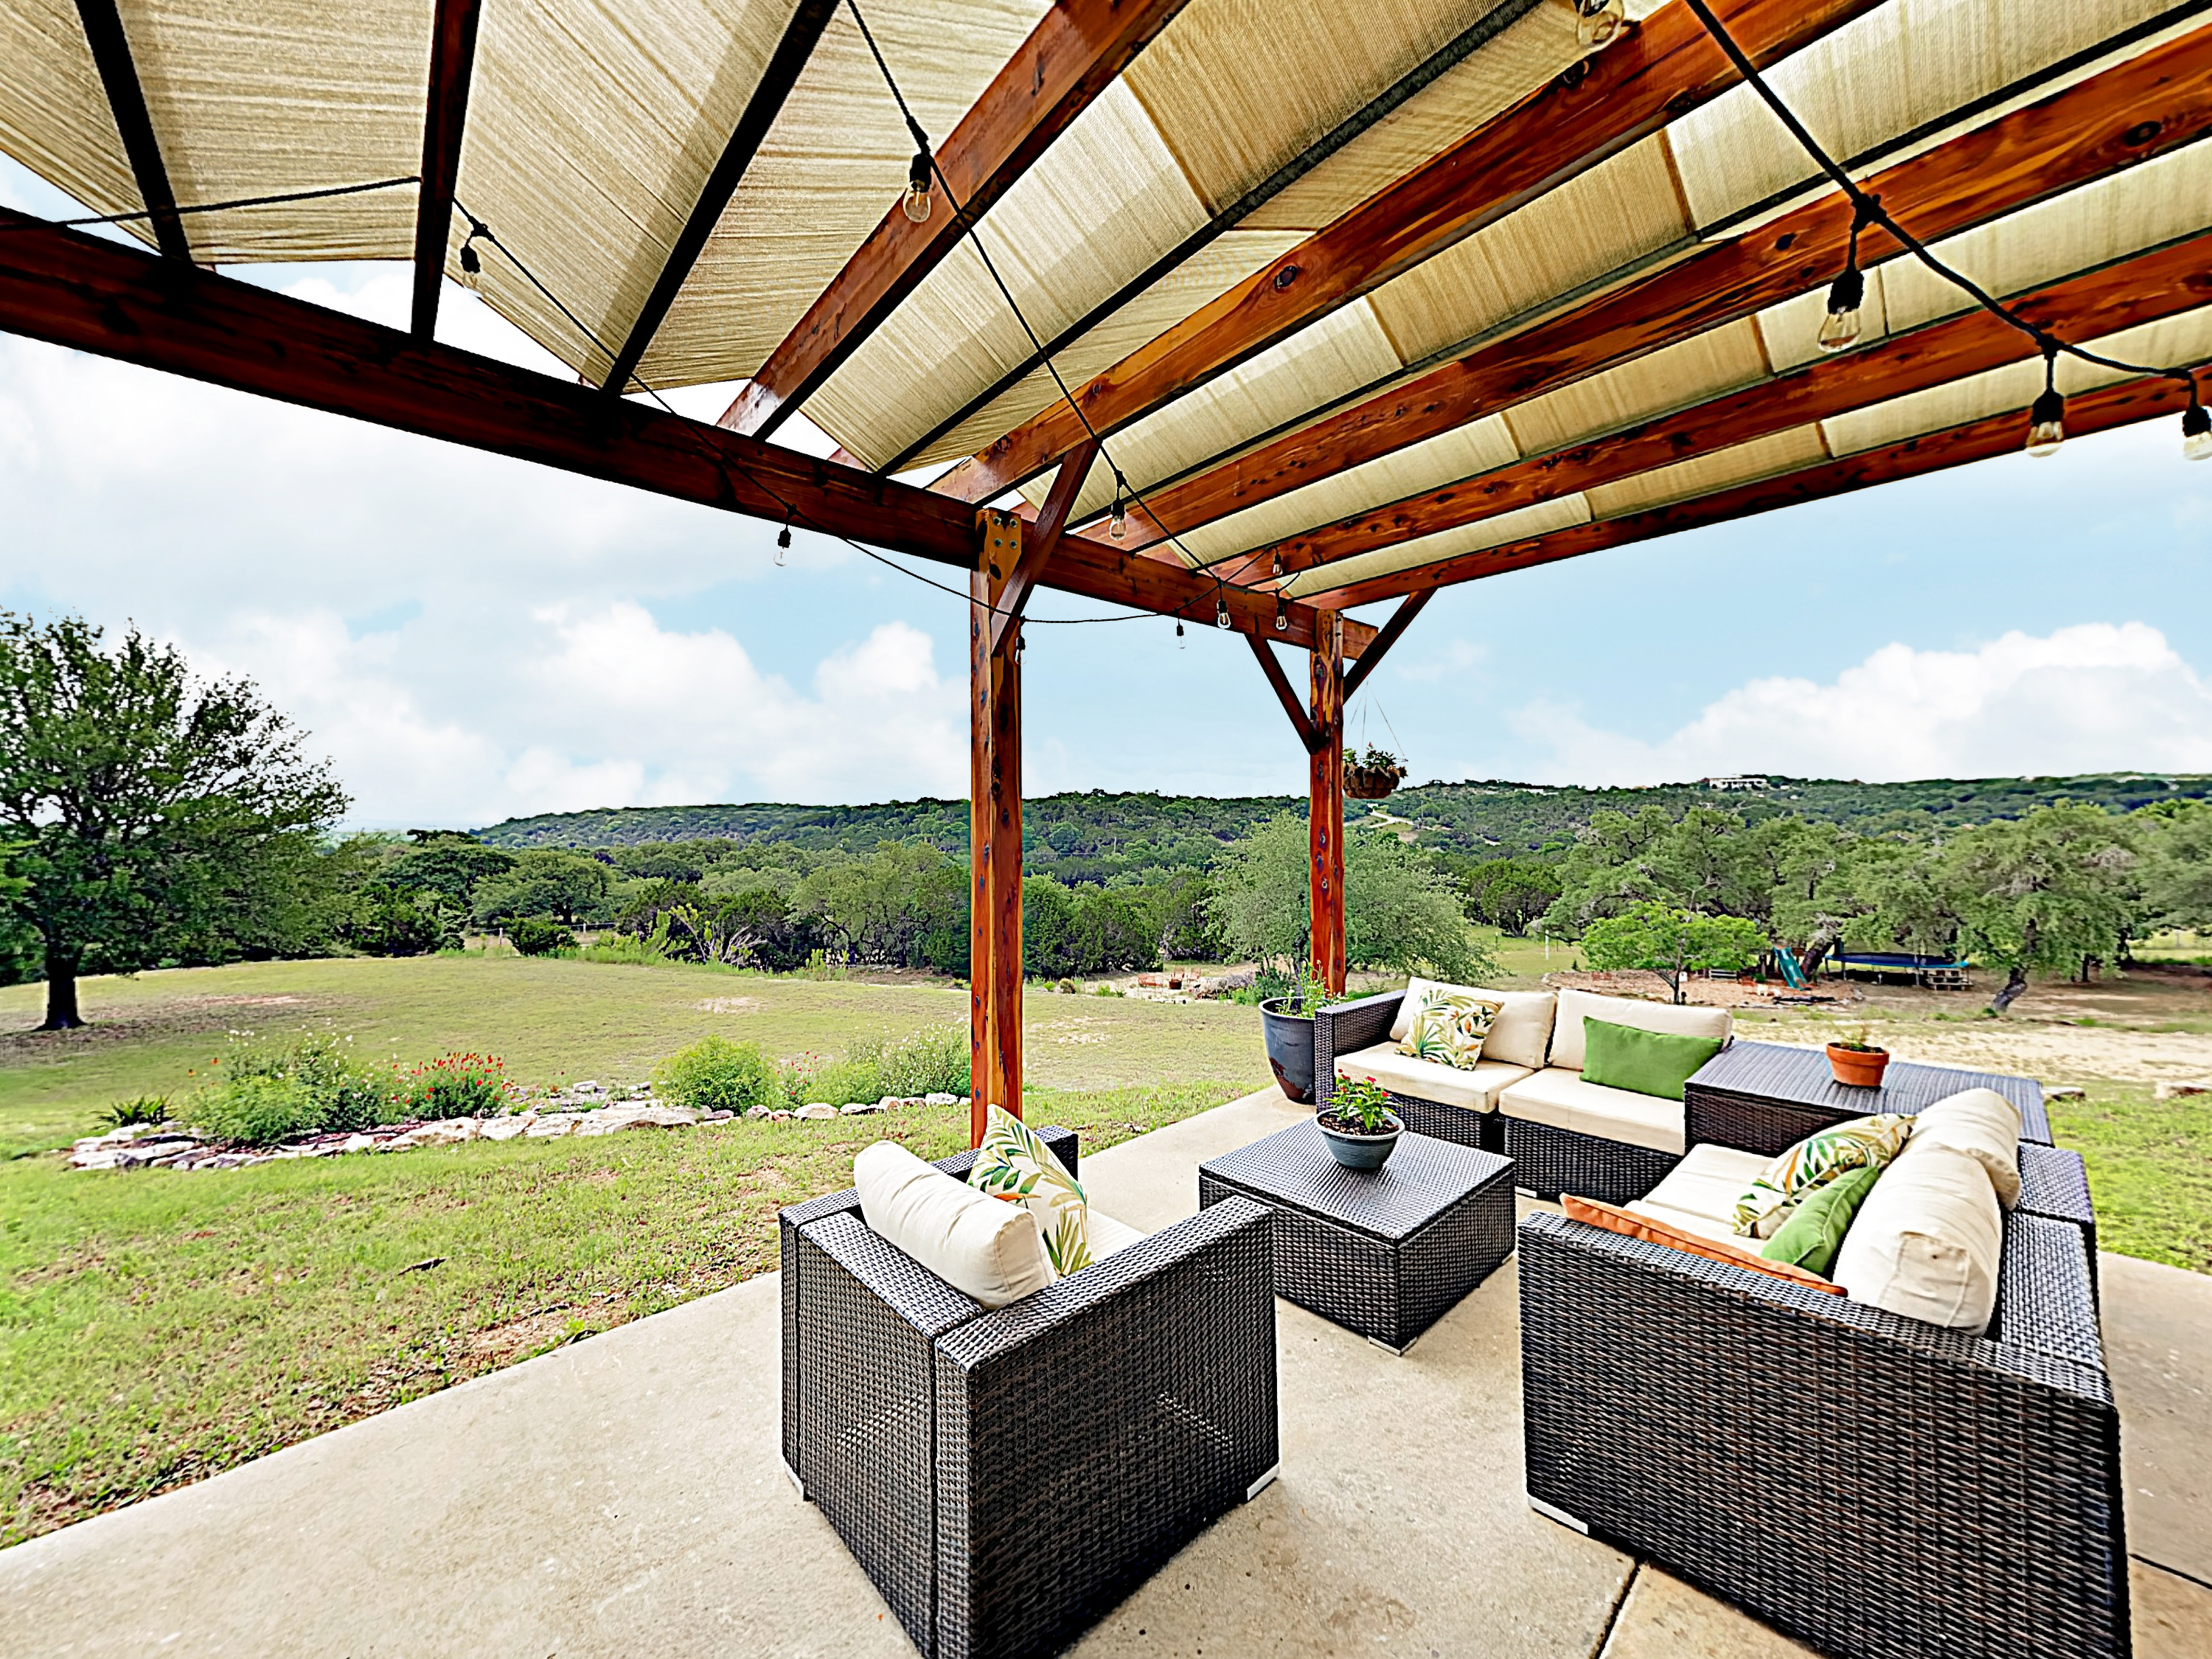 Dripping Springs TX Vacation Rental Welcome to Dripping